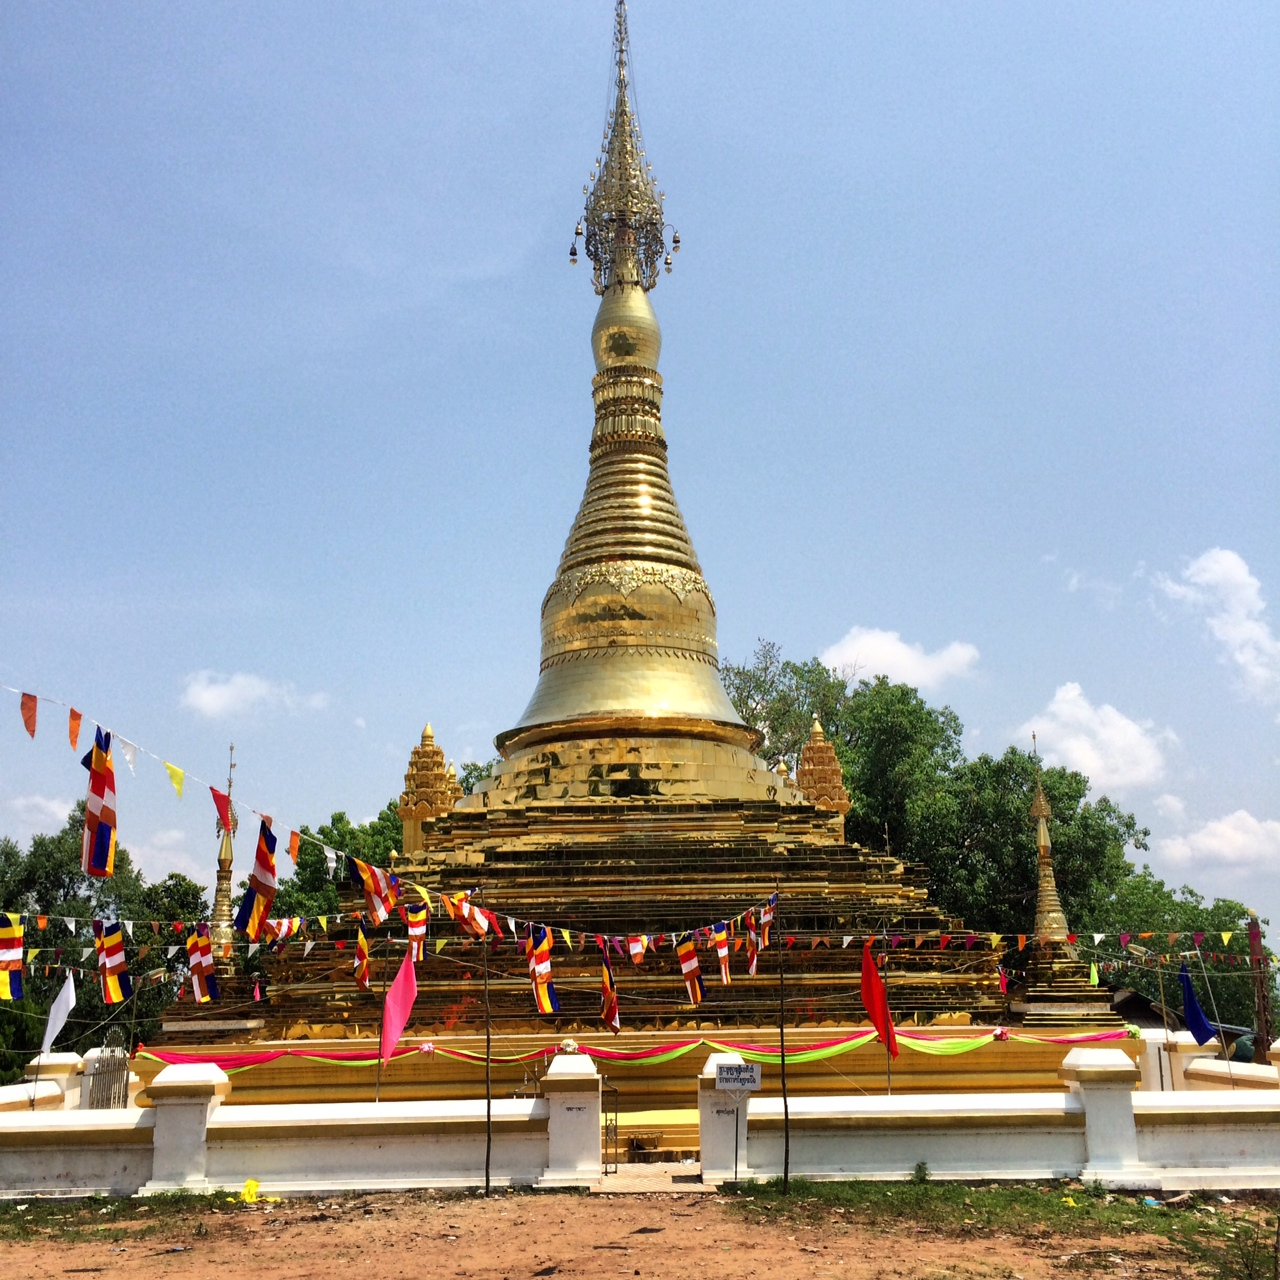 There are Burmese scripts on the stupa